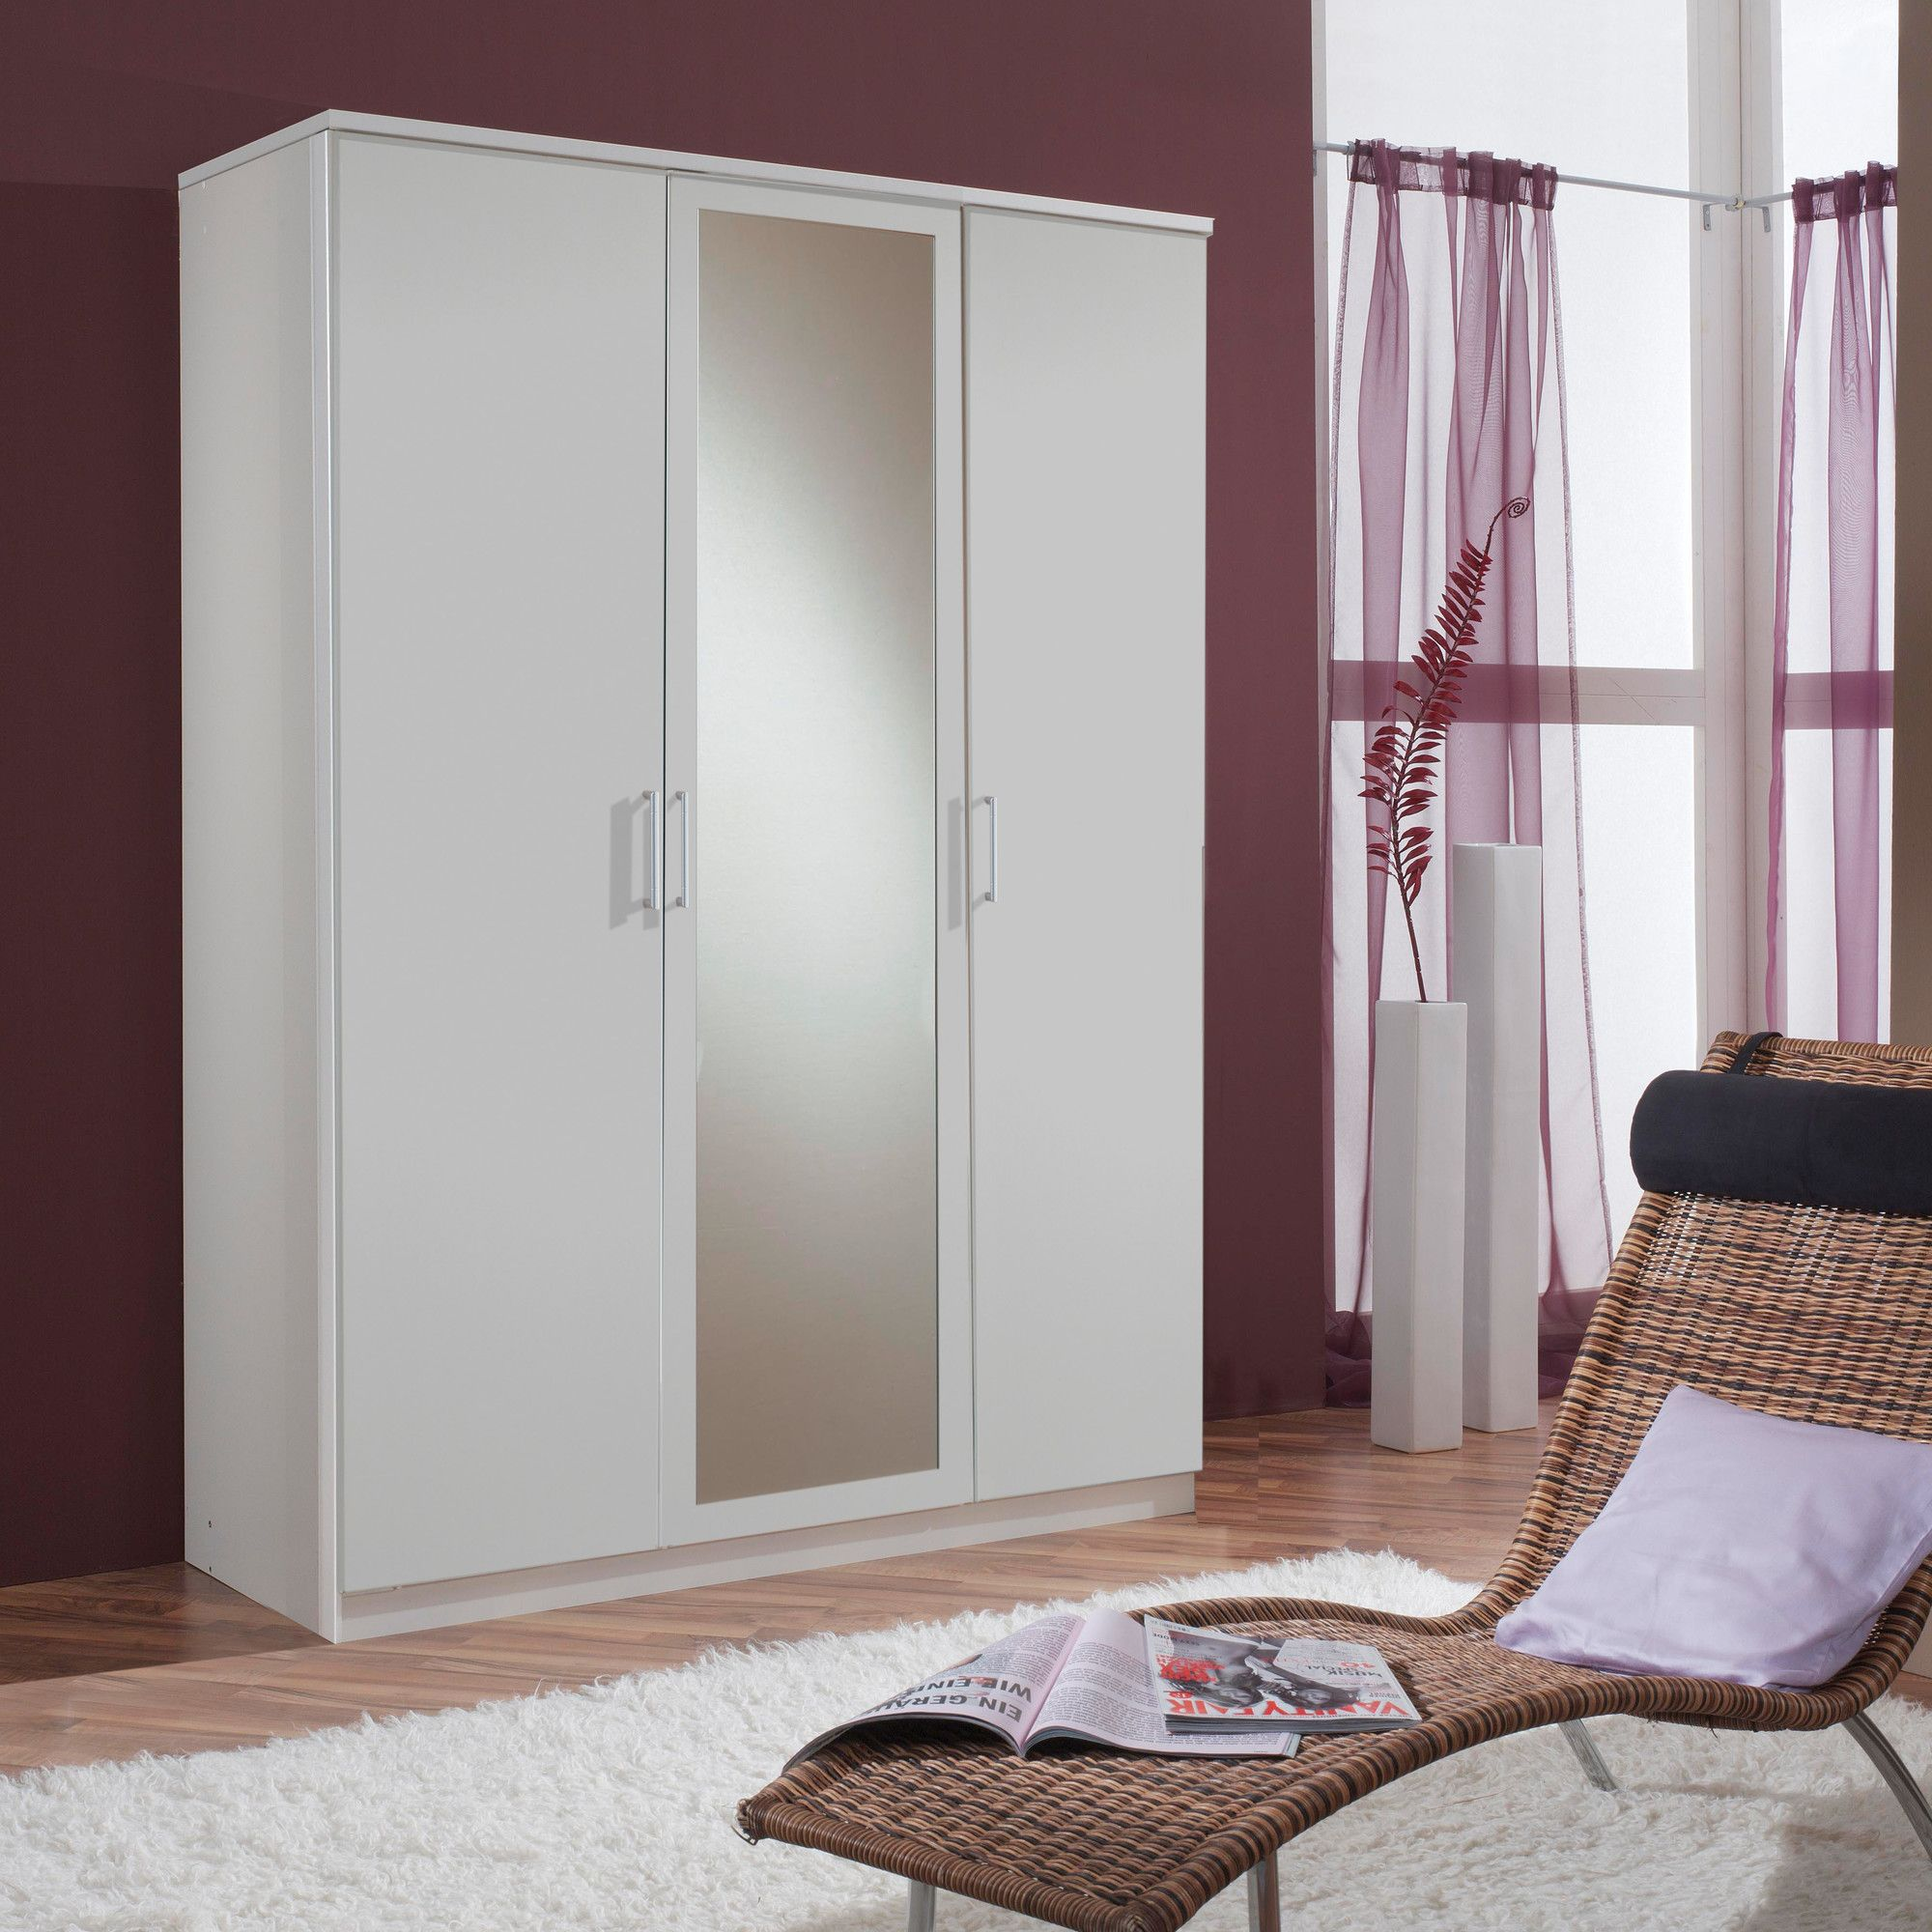 Amos Mann furniture Venice 3 Door Wardrobe - White at Tesco Direct